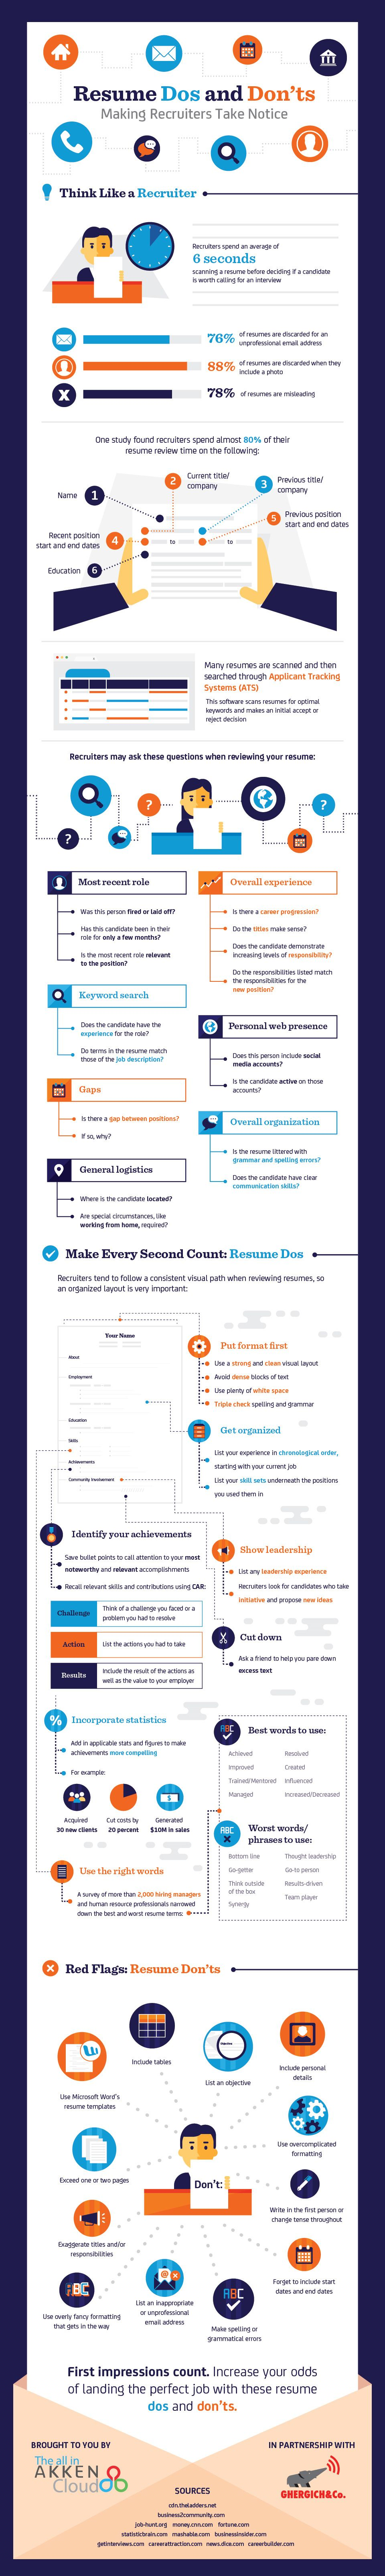 Resume Dos and Don\'ts: Making Recruiters Take Notice (Infographic ...